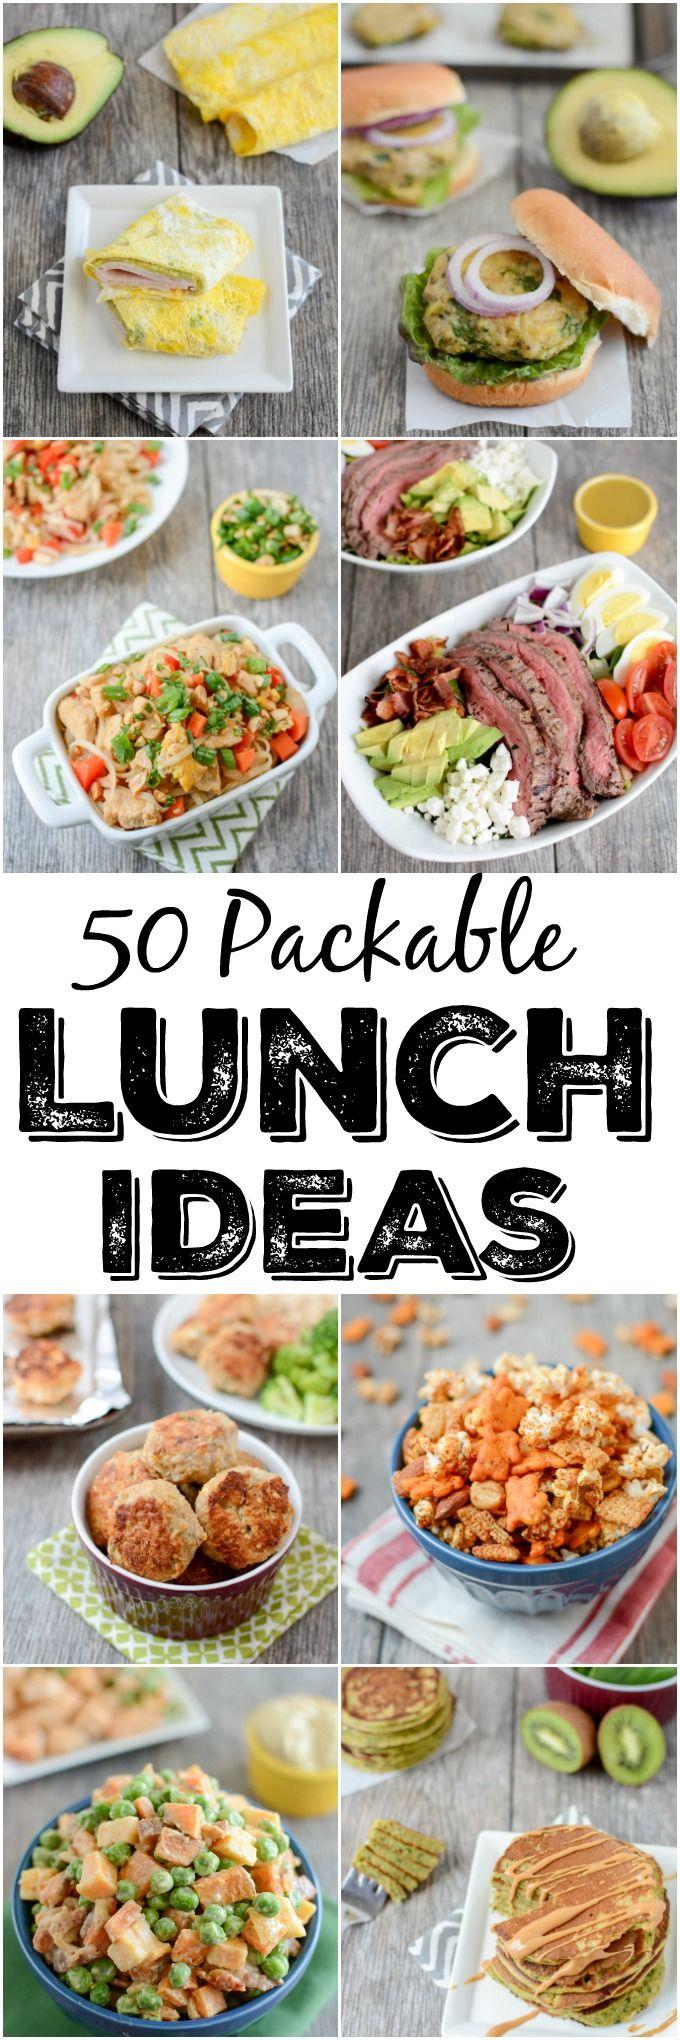 Here are 50 packable lunch ideas that are quick, easy and healthy! Perfect for kids and adults if you're tired of packing the same thing every day!